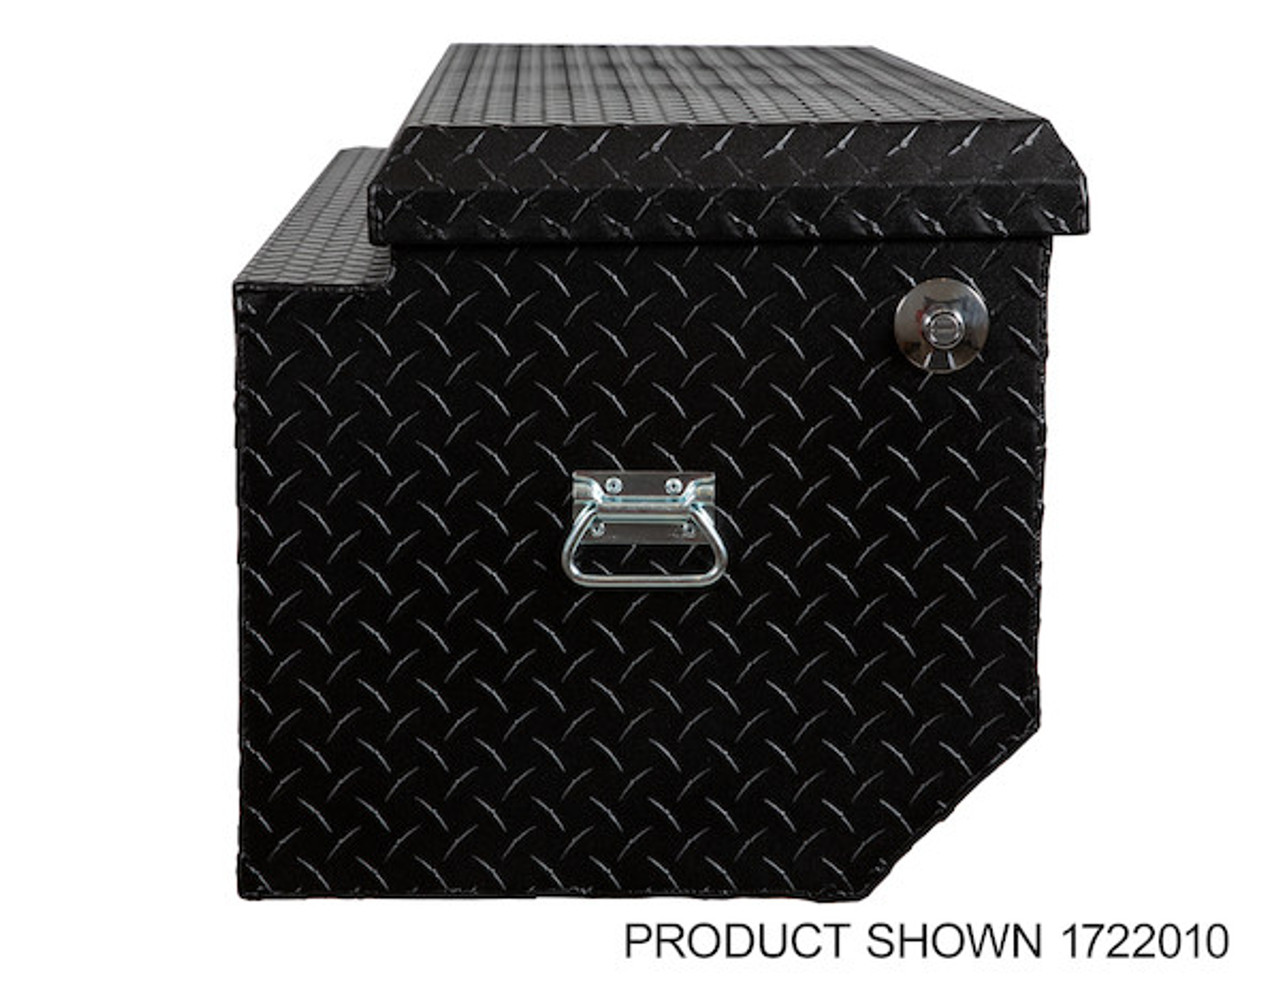 "1722010 BUYERS PRODUCTS TEXTURED MATTE BLACK DIAMOND TREAD ALUMINUM ALL-PURPOSE TOOLBOX WITH ANGLED BASE 19""HX20""DX47""W Picture # 7"